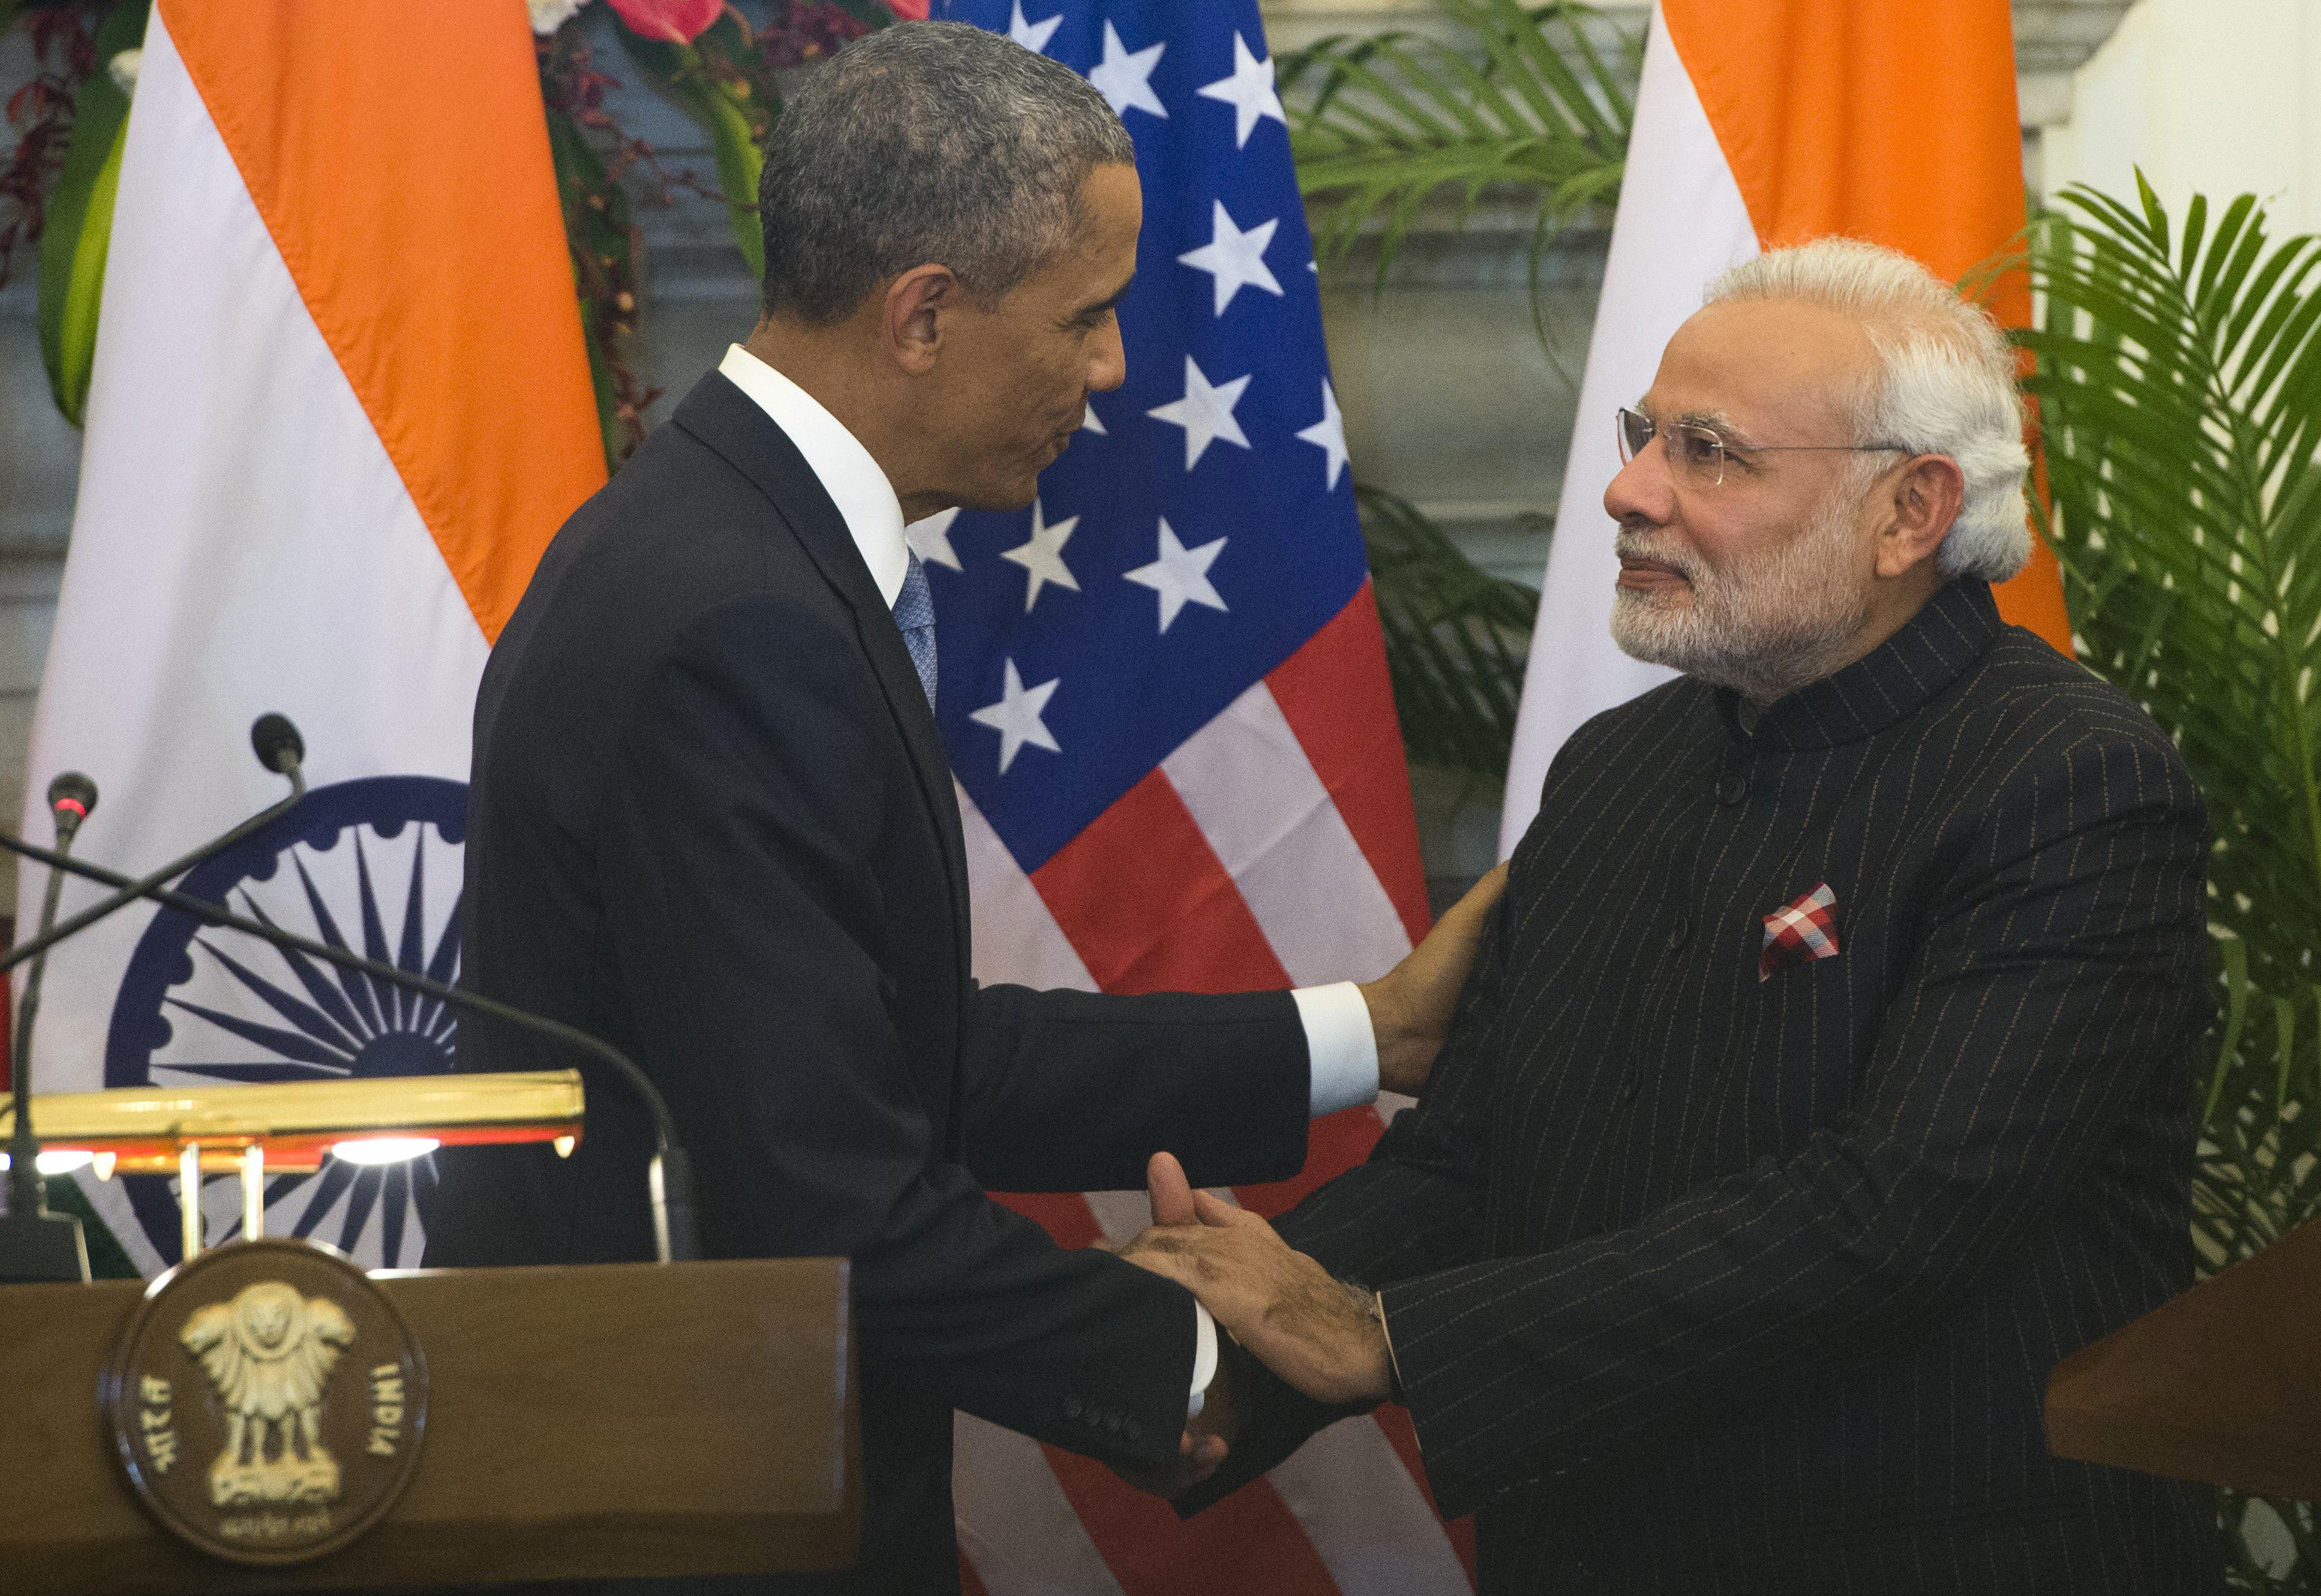 Obama, Modi break nuclear impasse, hail new 'friendship'